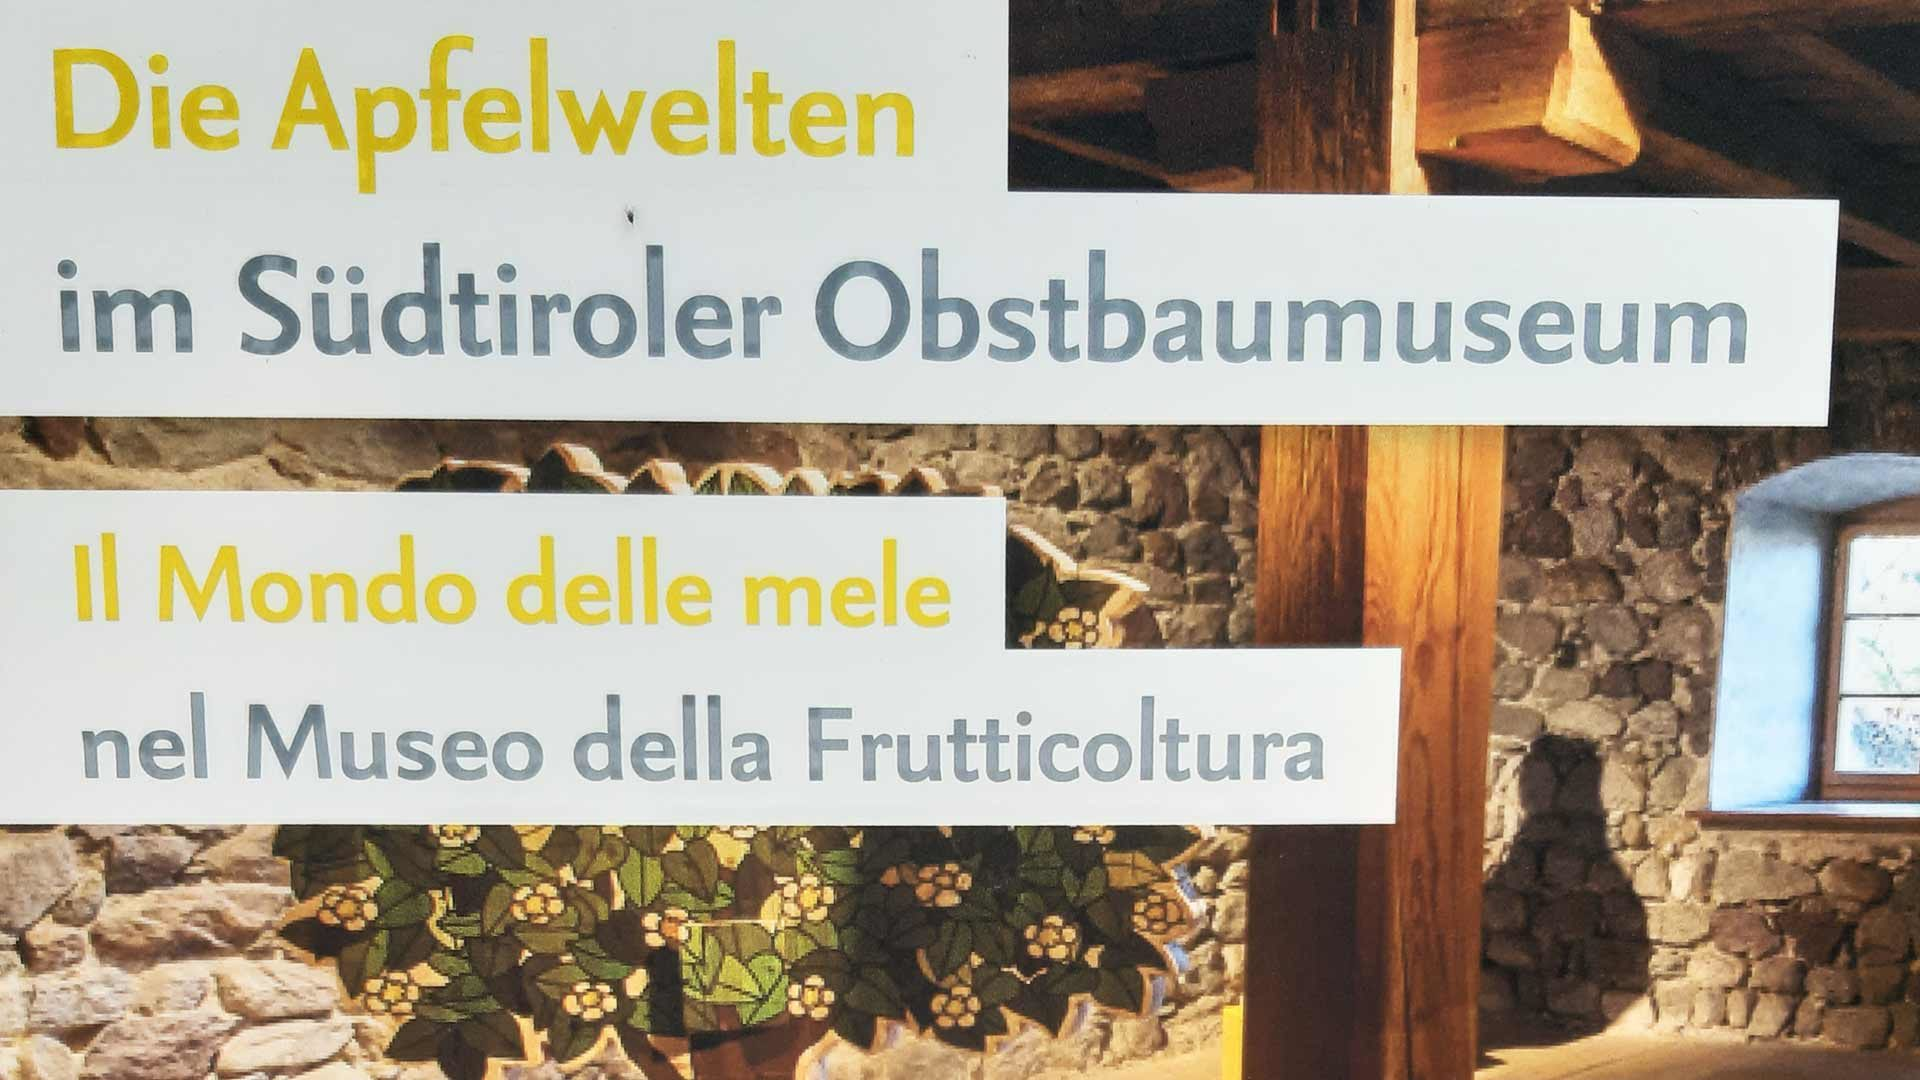 Obstbaumuseum in Südtirol